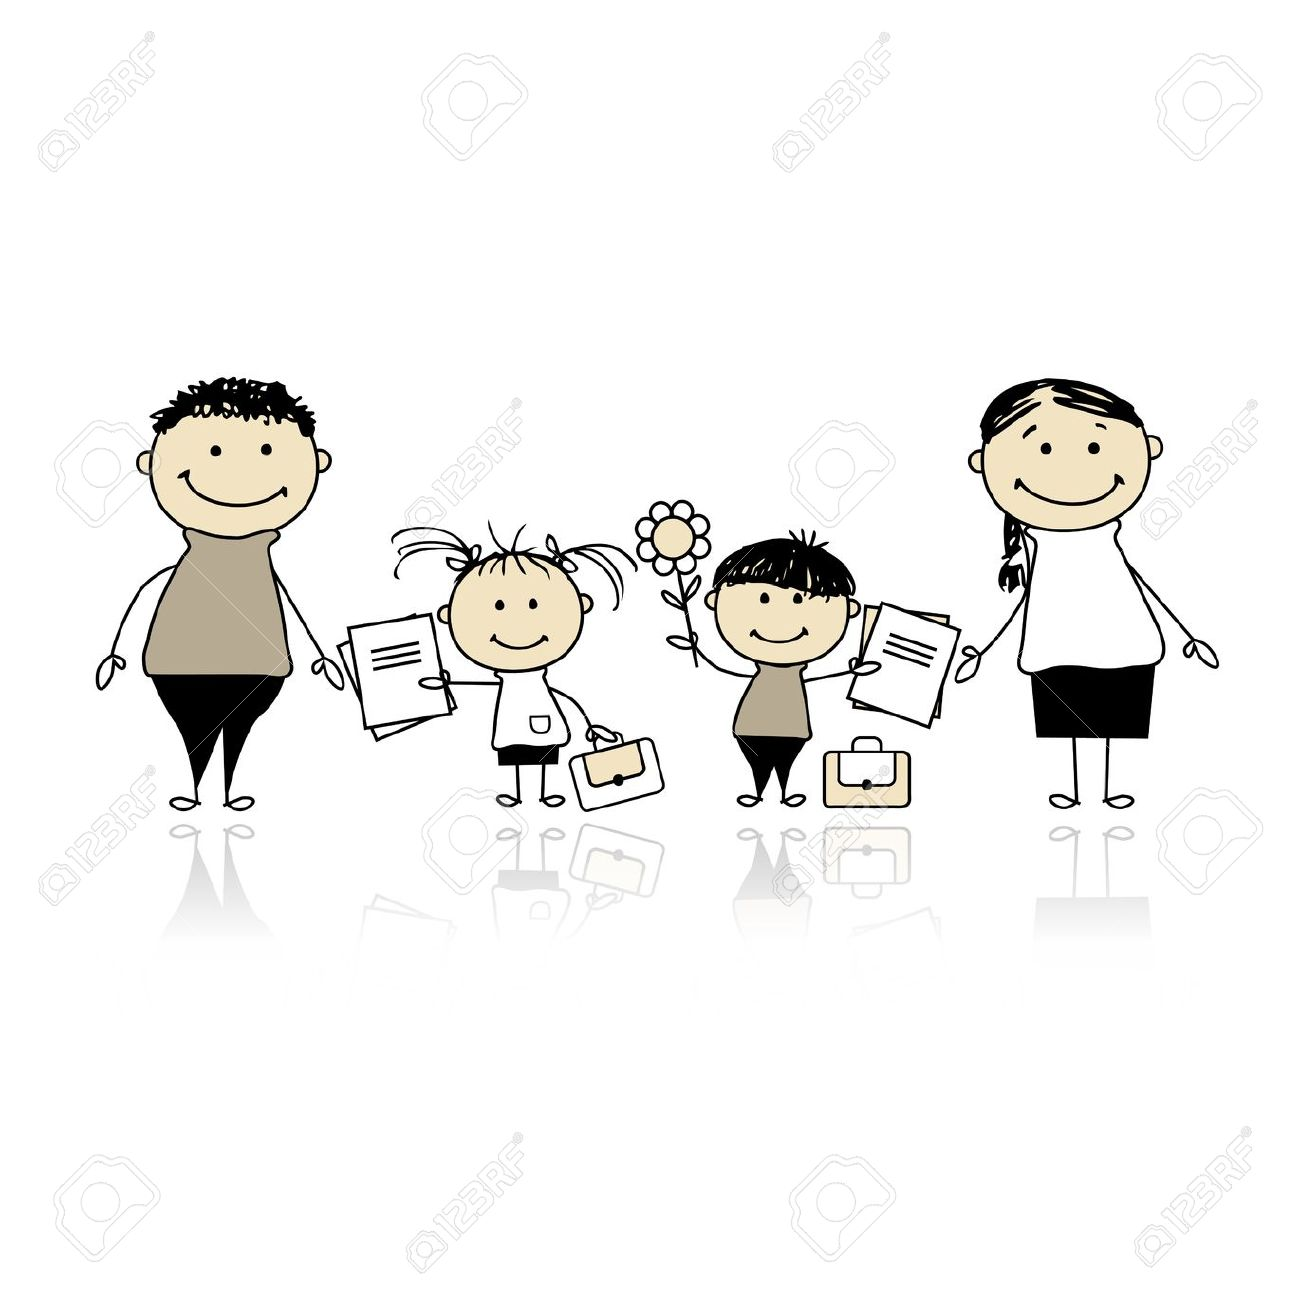 Kids with parents clipart picture black and white download Back To School, Children With Parents Royalty Free Cliparts ... picture black and white download